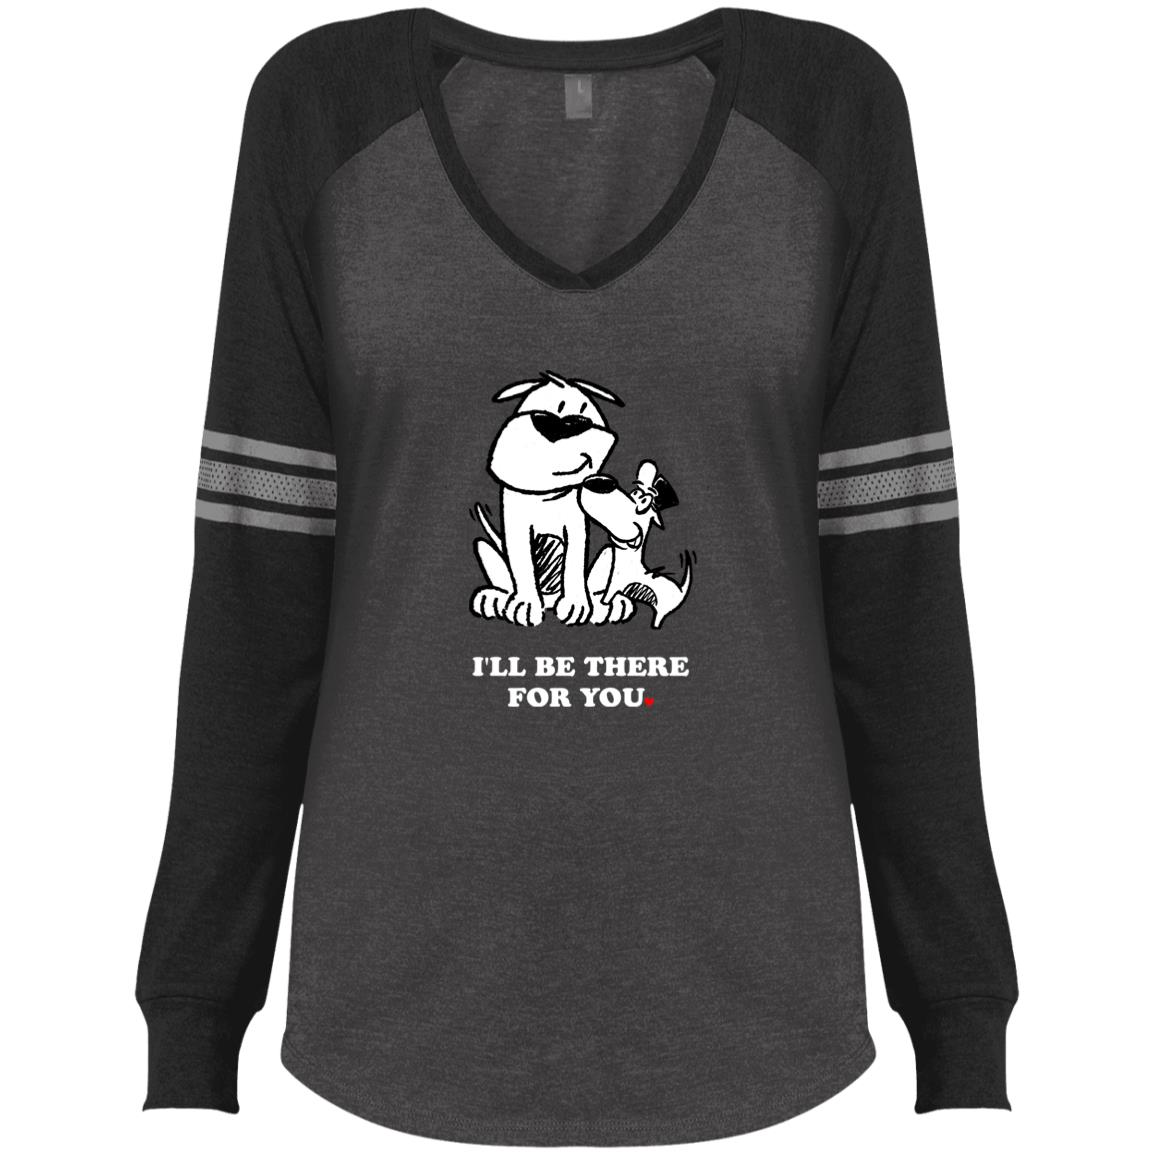 'I'll Be There For You'  💕 ResQ & Mischief Friends - Varsity V-Neck Long Sleeve 🐾  Deal 20% Off!